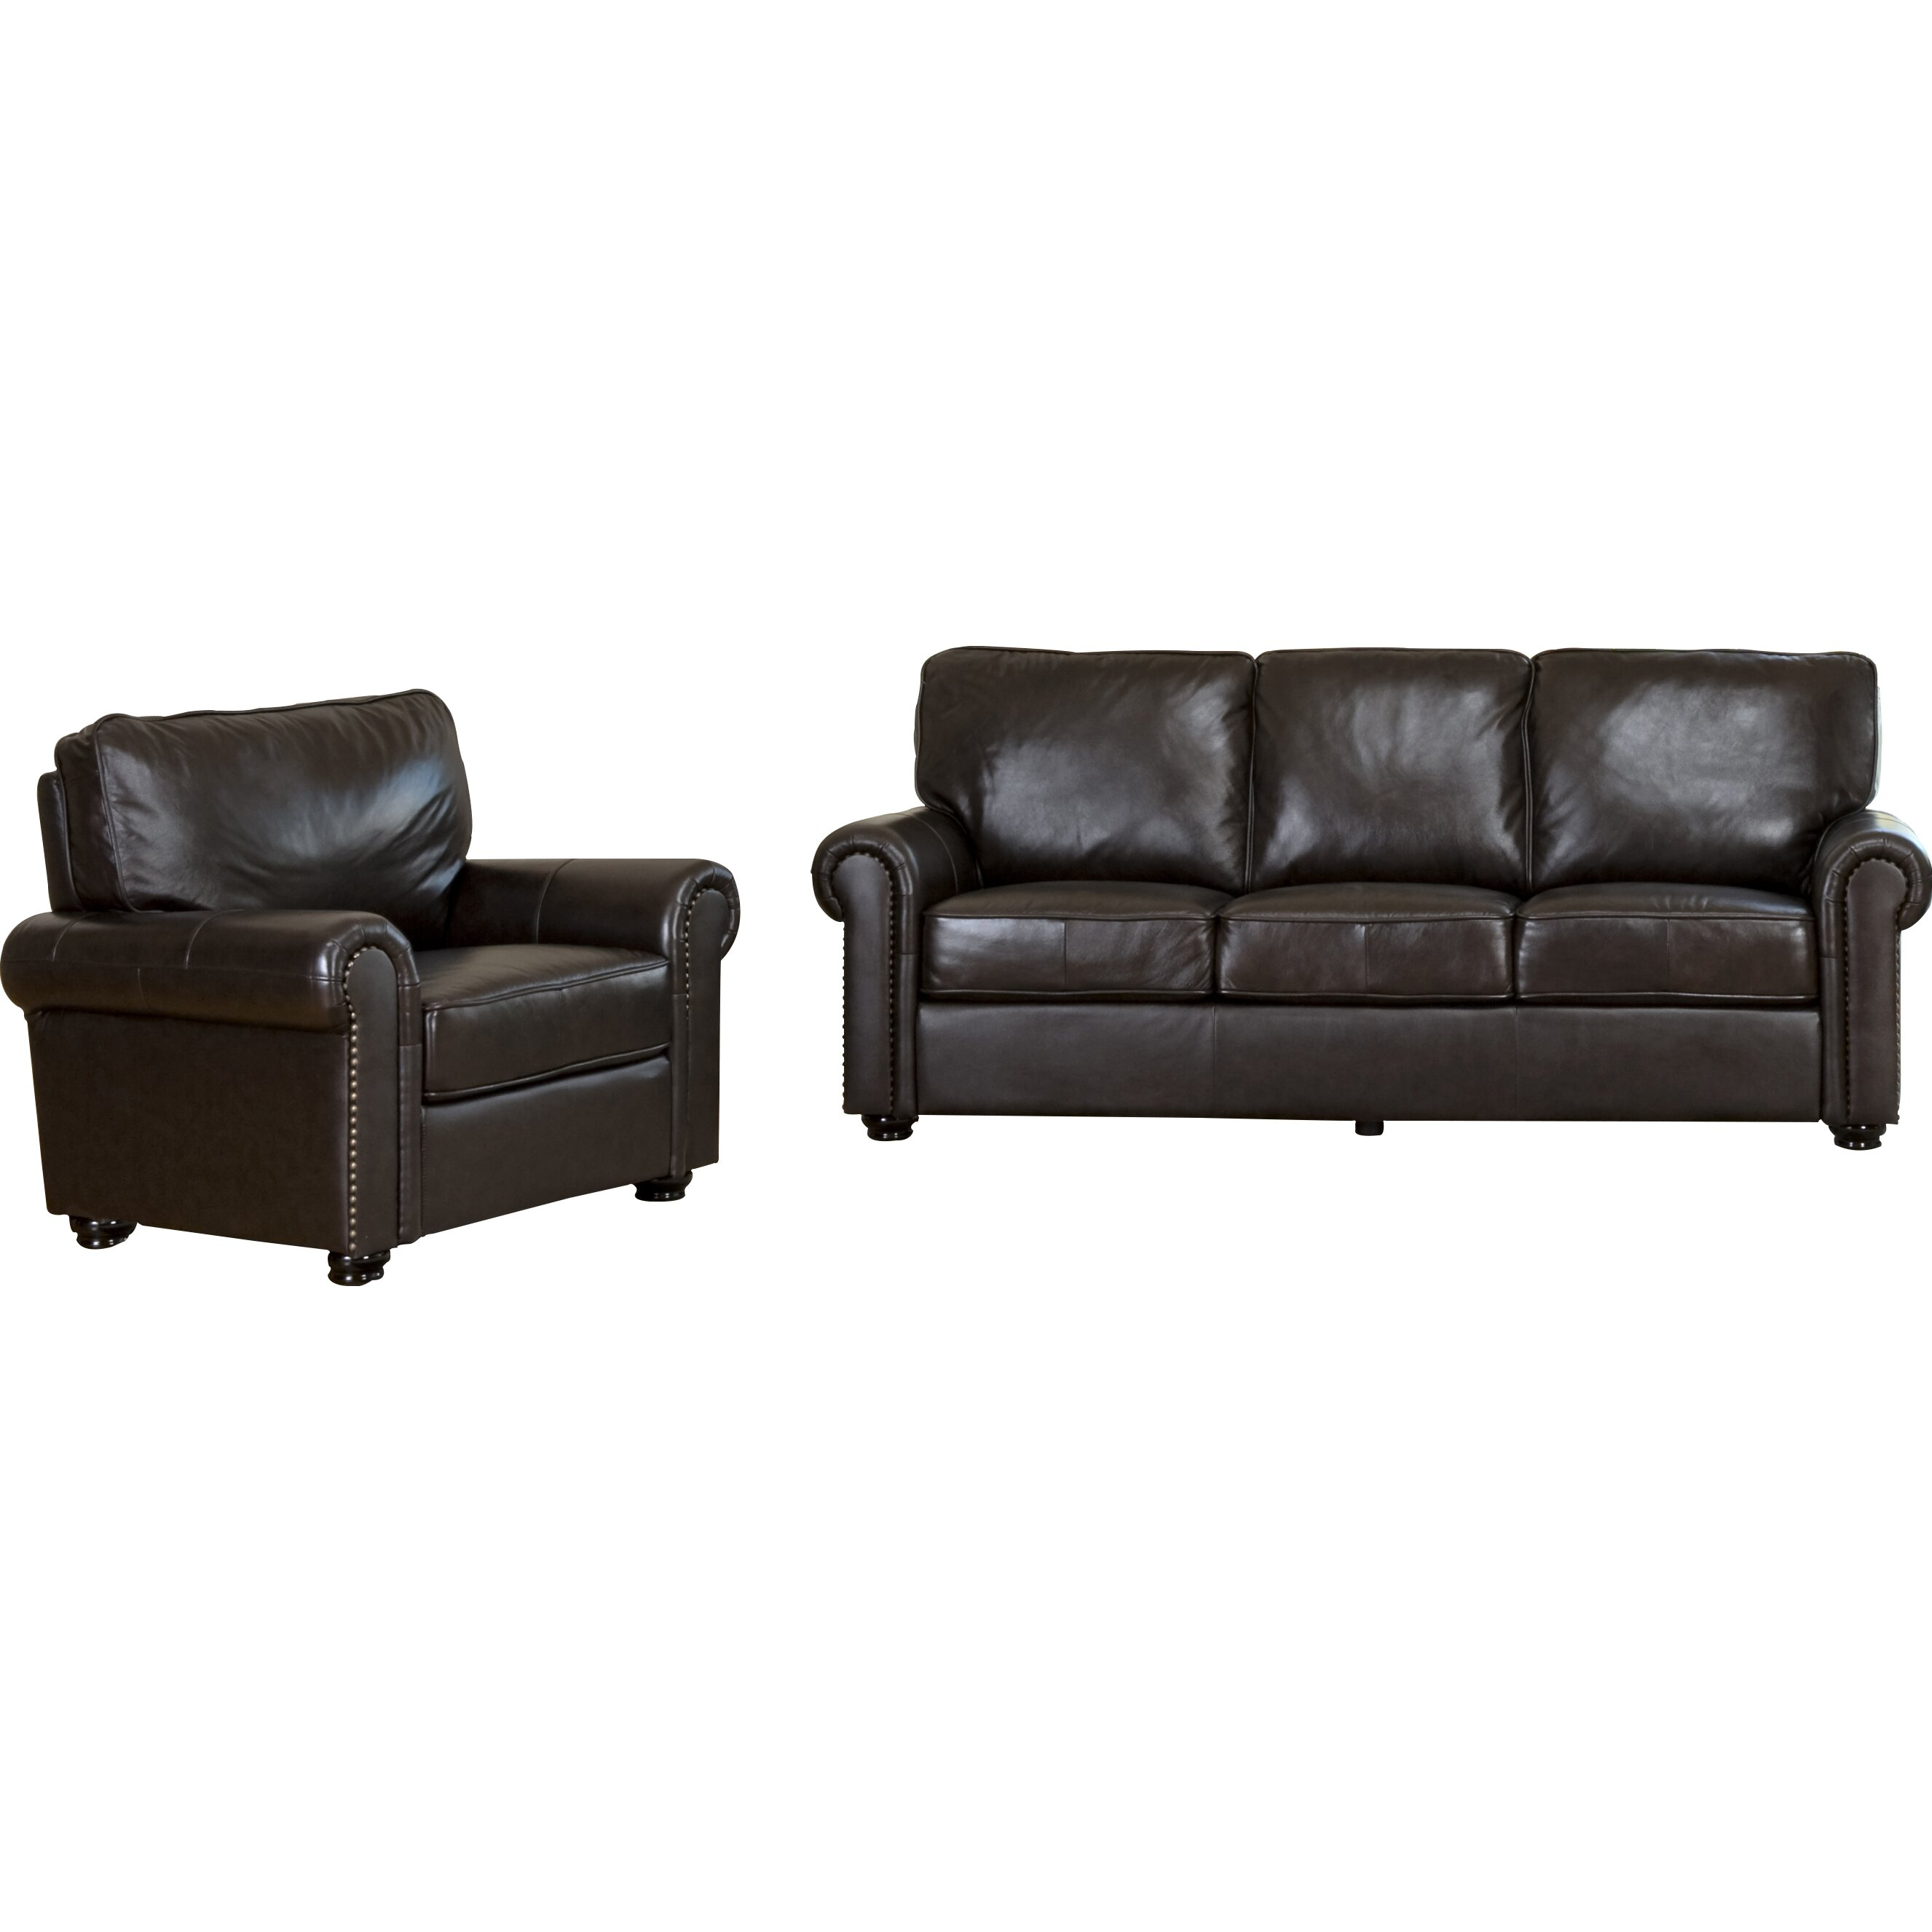 Darby Home Co Coggins Leather Sofa and Chair Set & Reviews   Wayfair